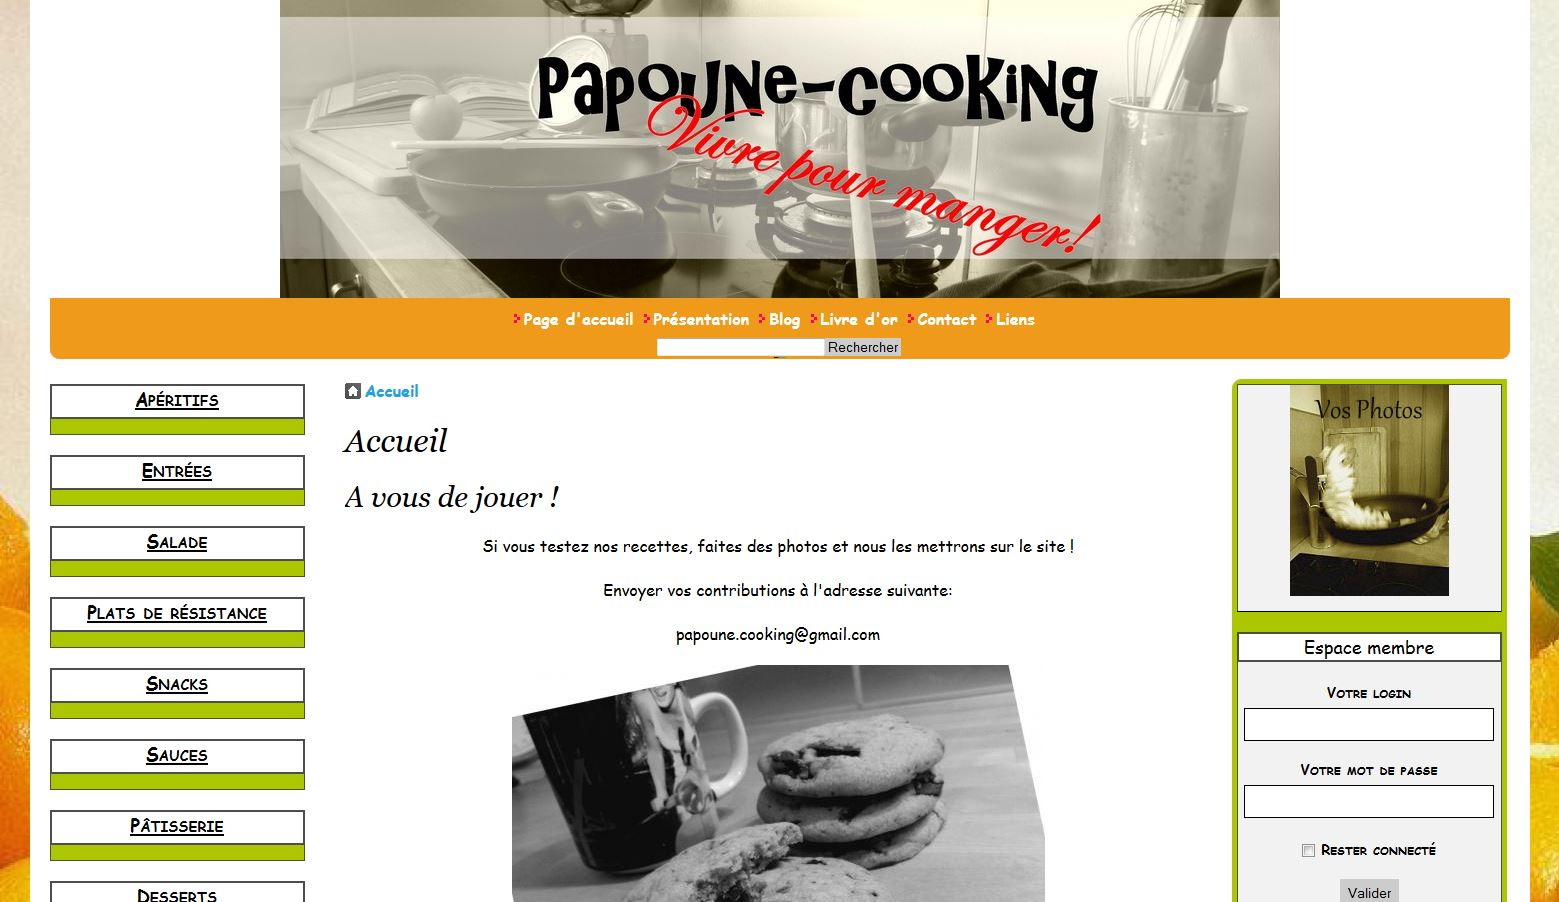 Papoune-cooking